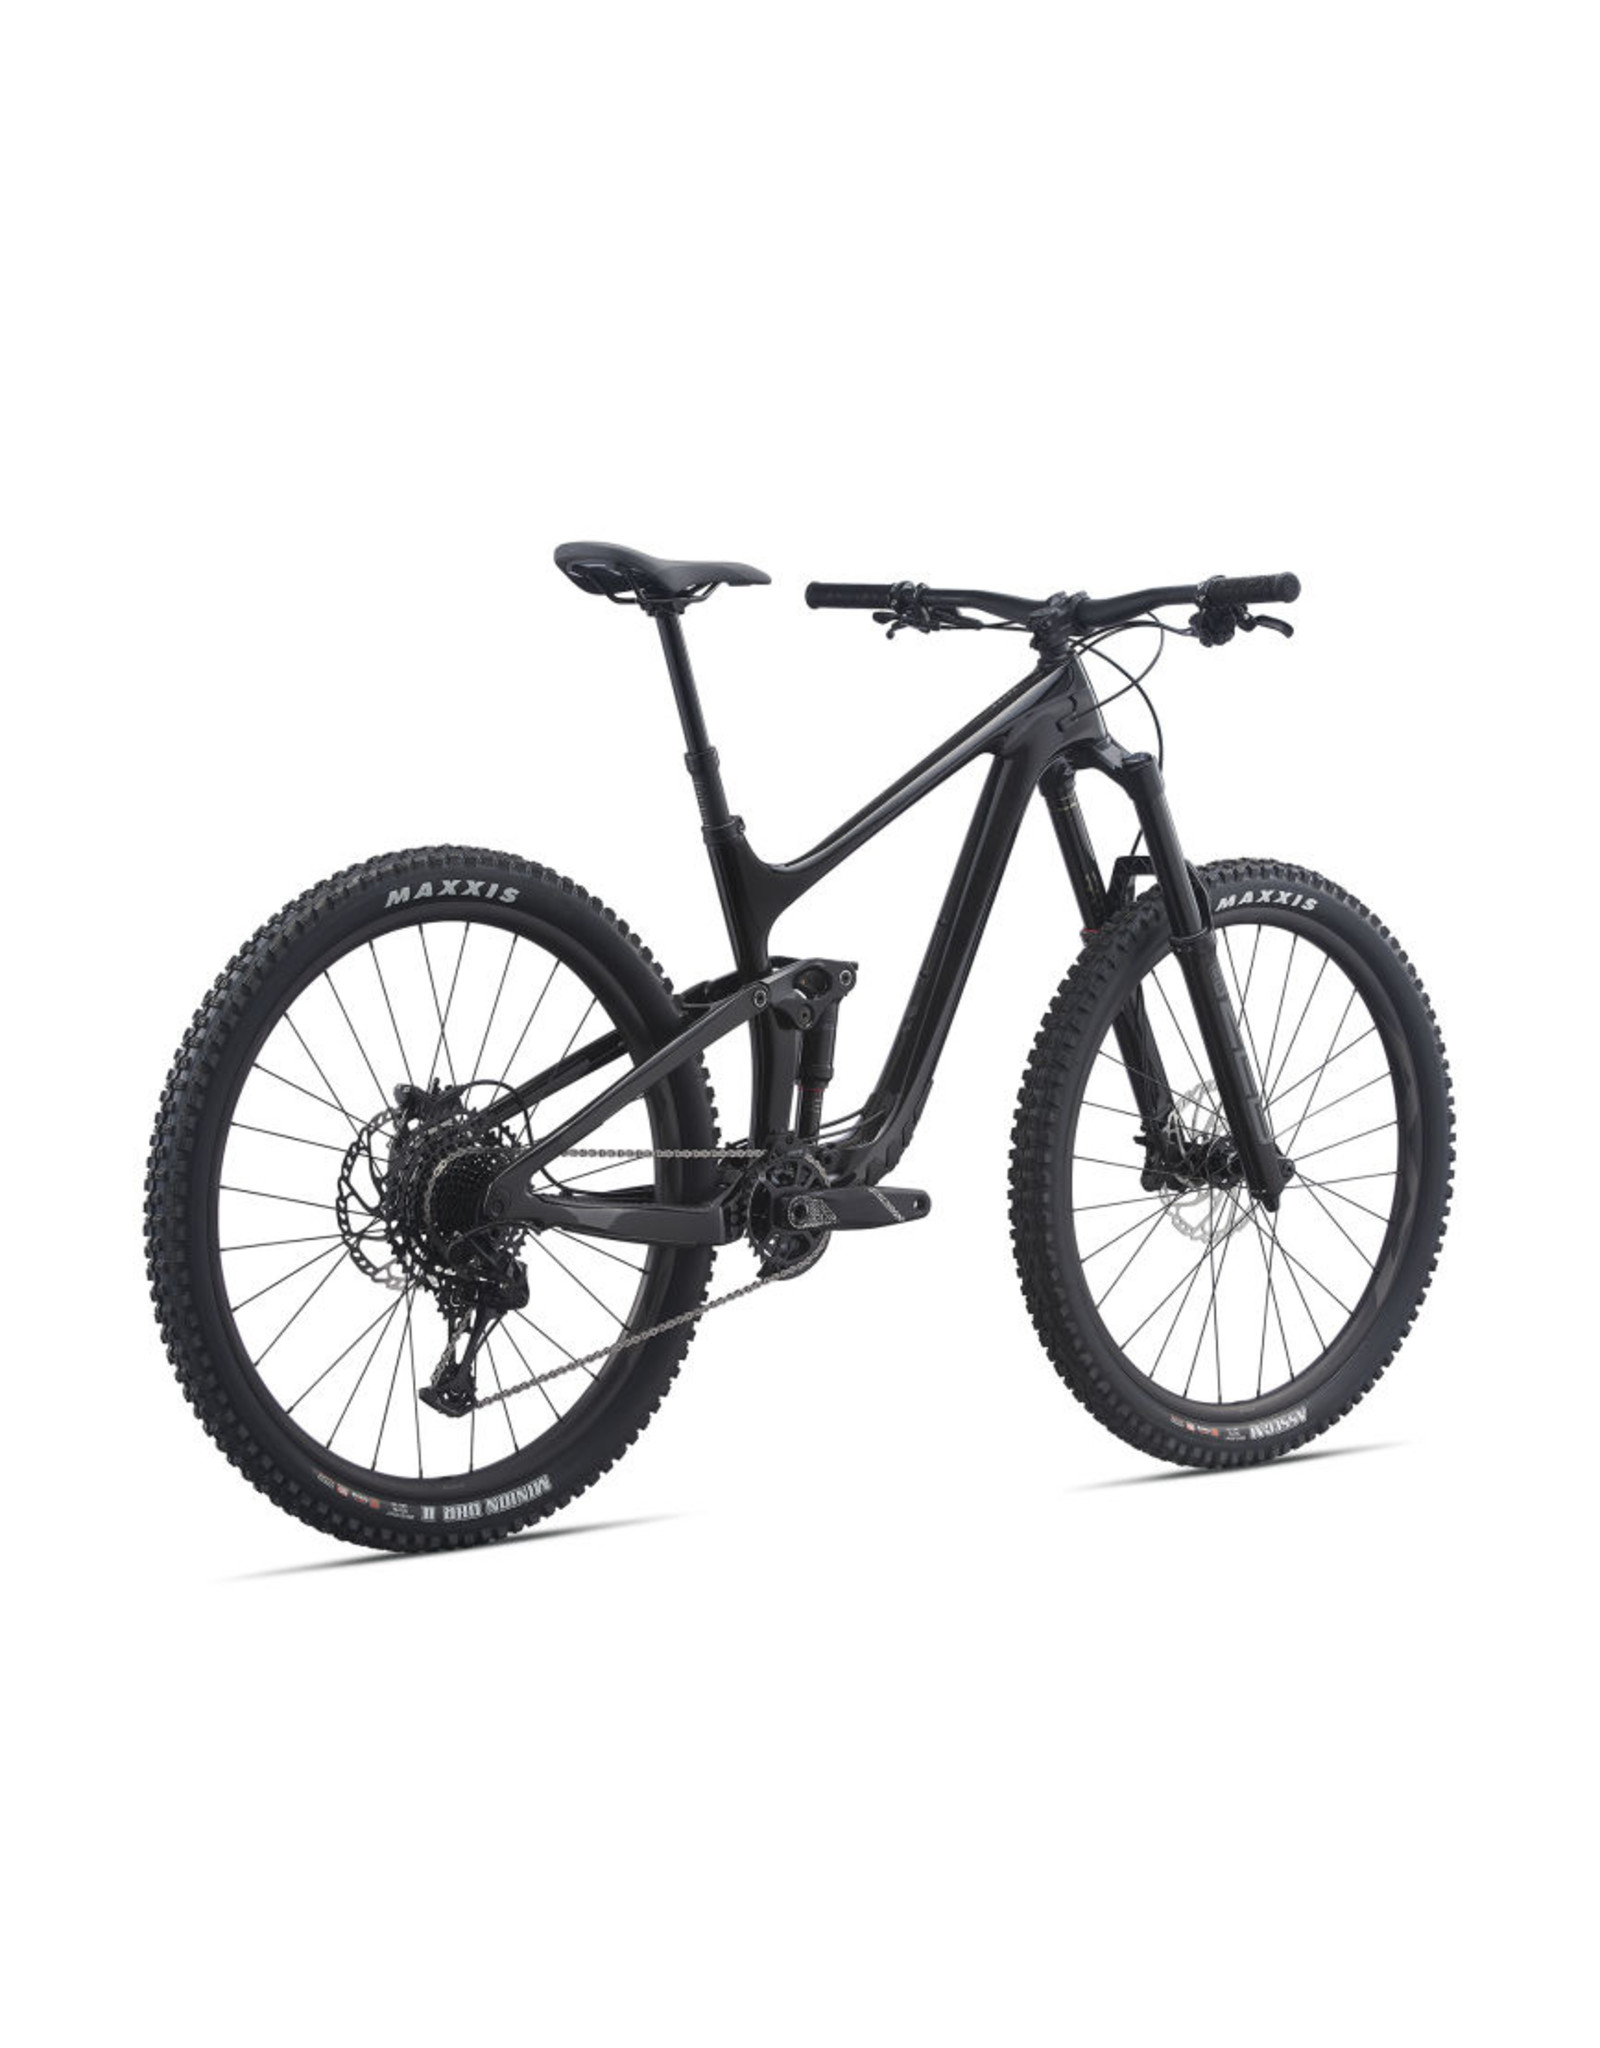 GIANT BICYCLES 2021 Reign Adv Pro 29 2